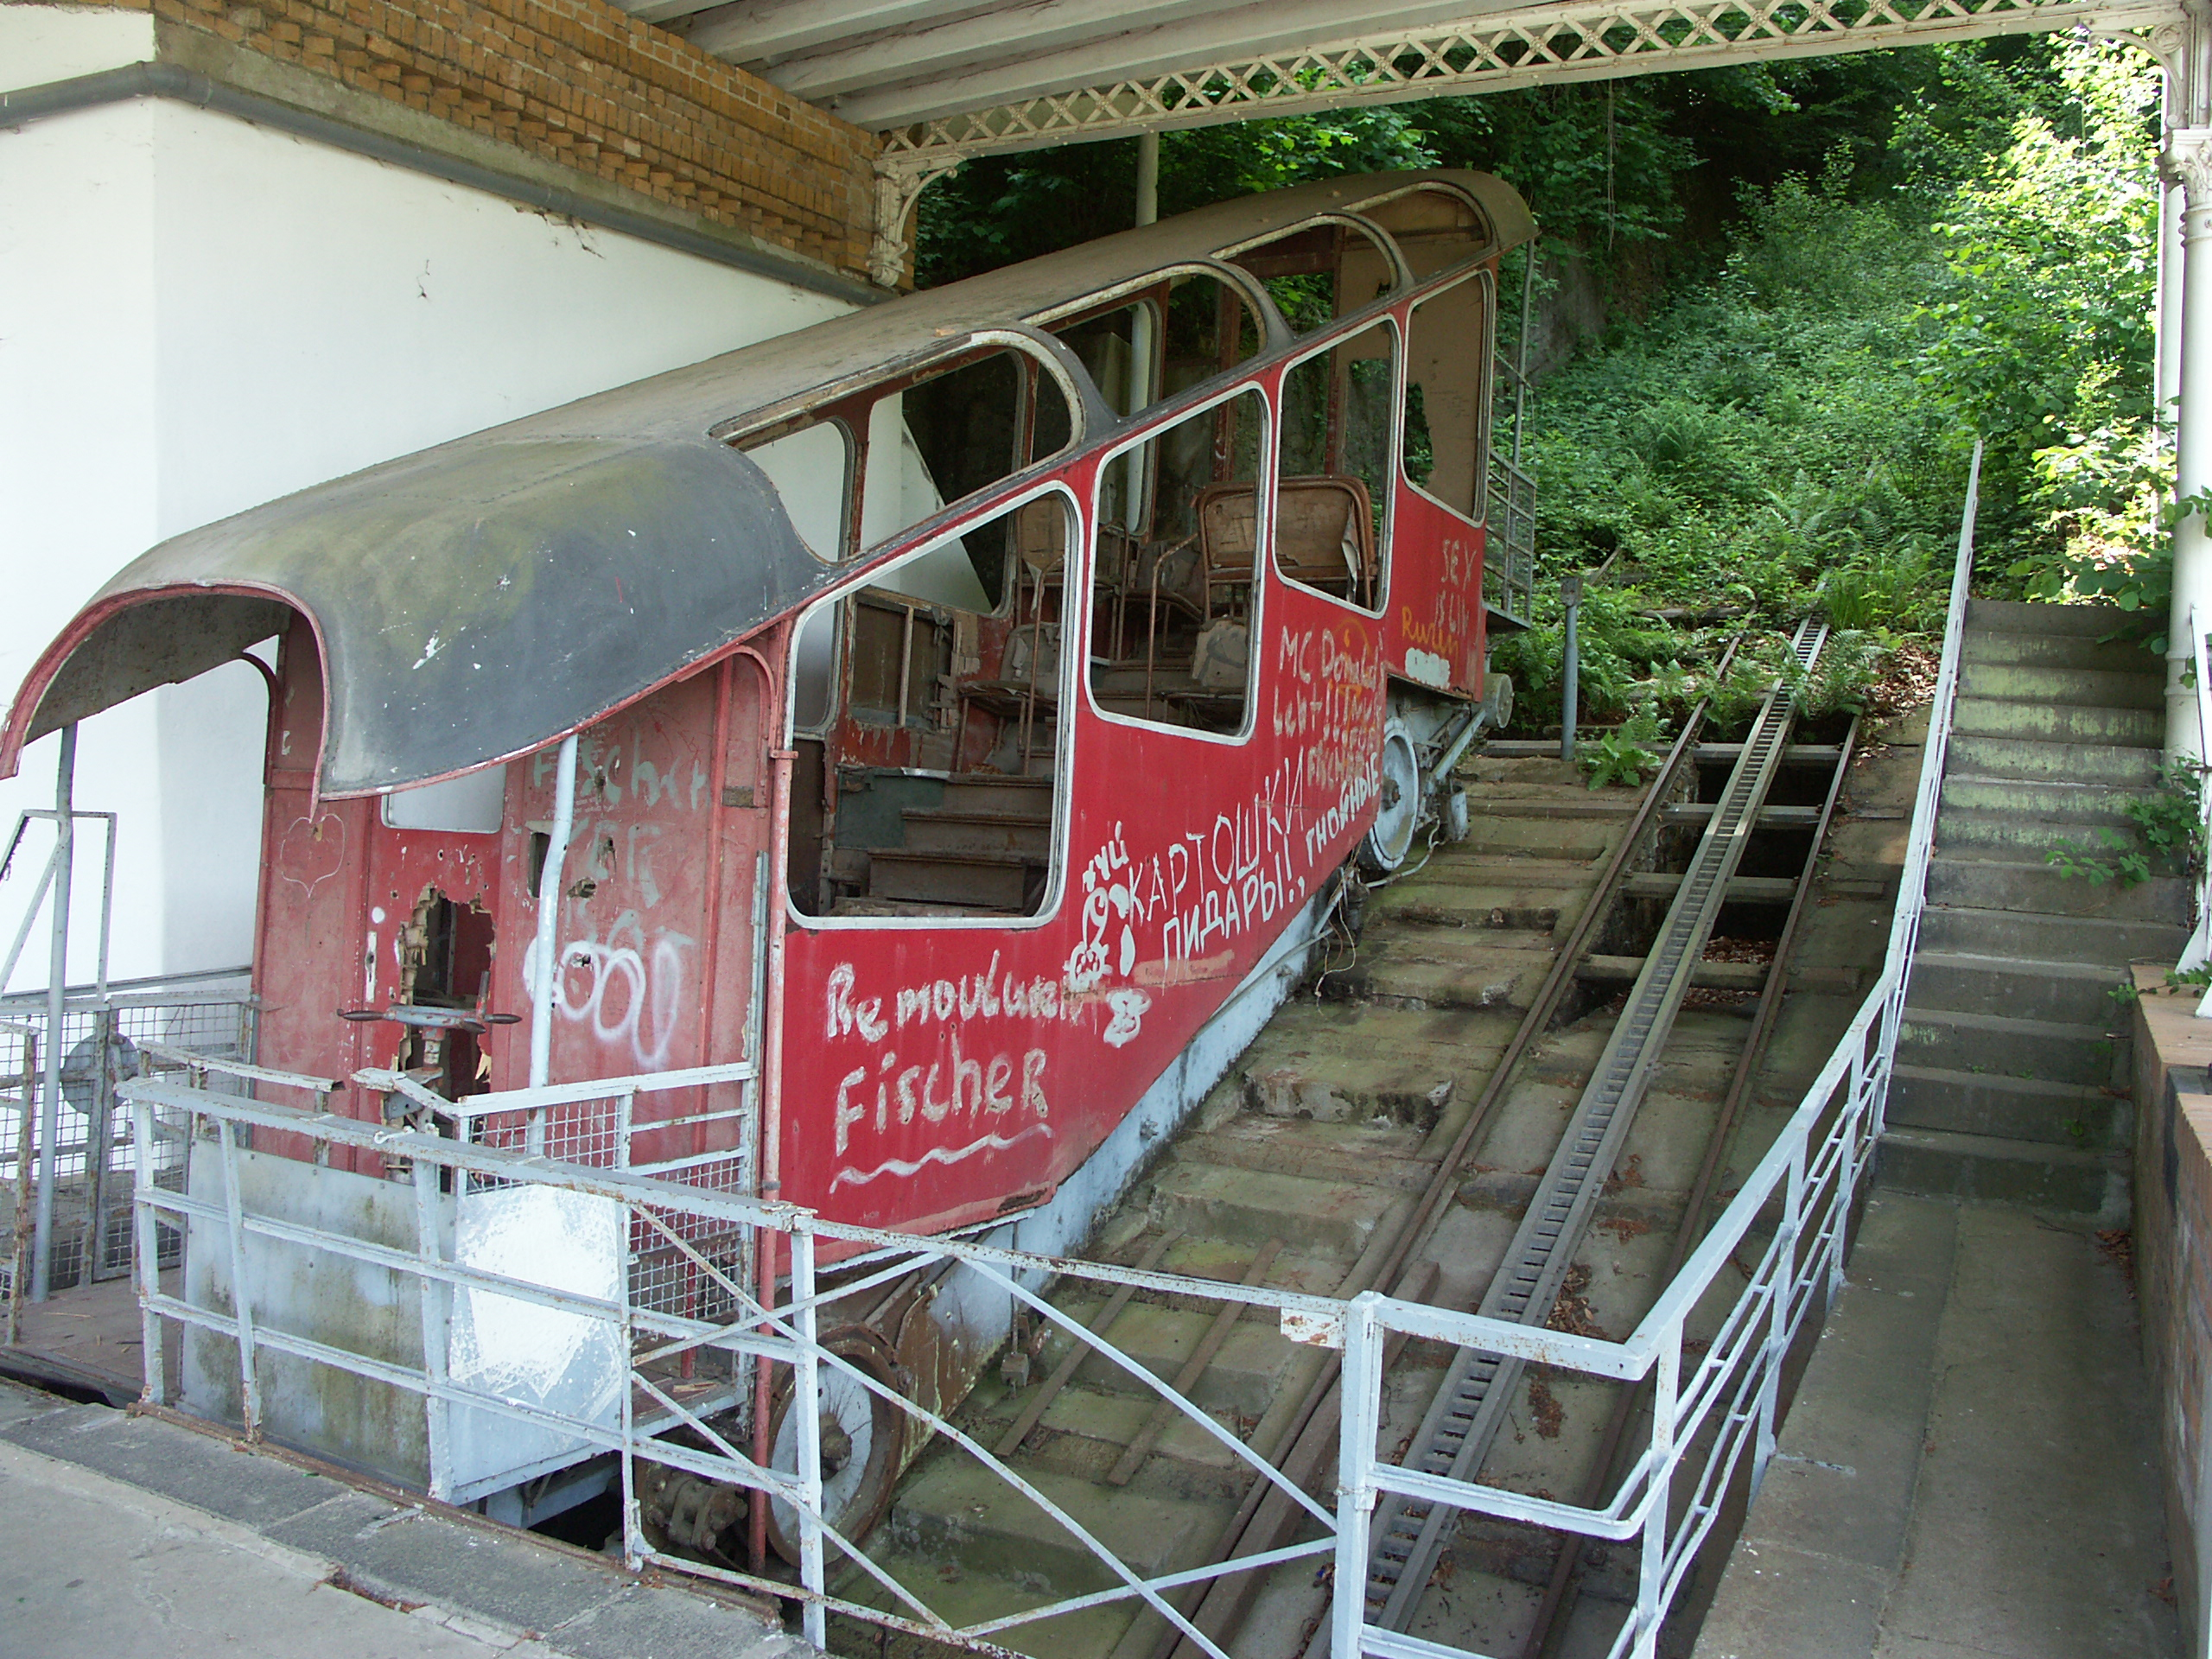 Cable car in valley station taken Jun 2008 before restoration, Author: rs-foto, Eigenes Werk CC BY-SA 3.0